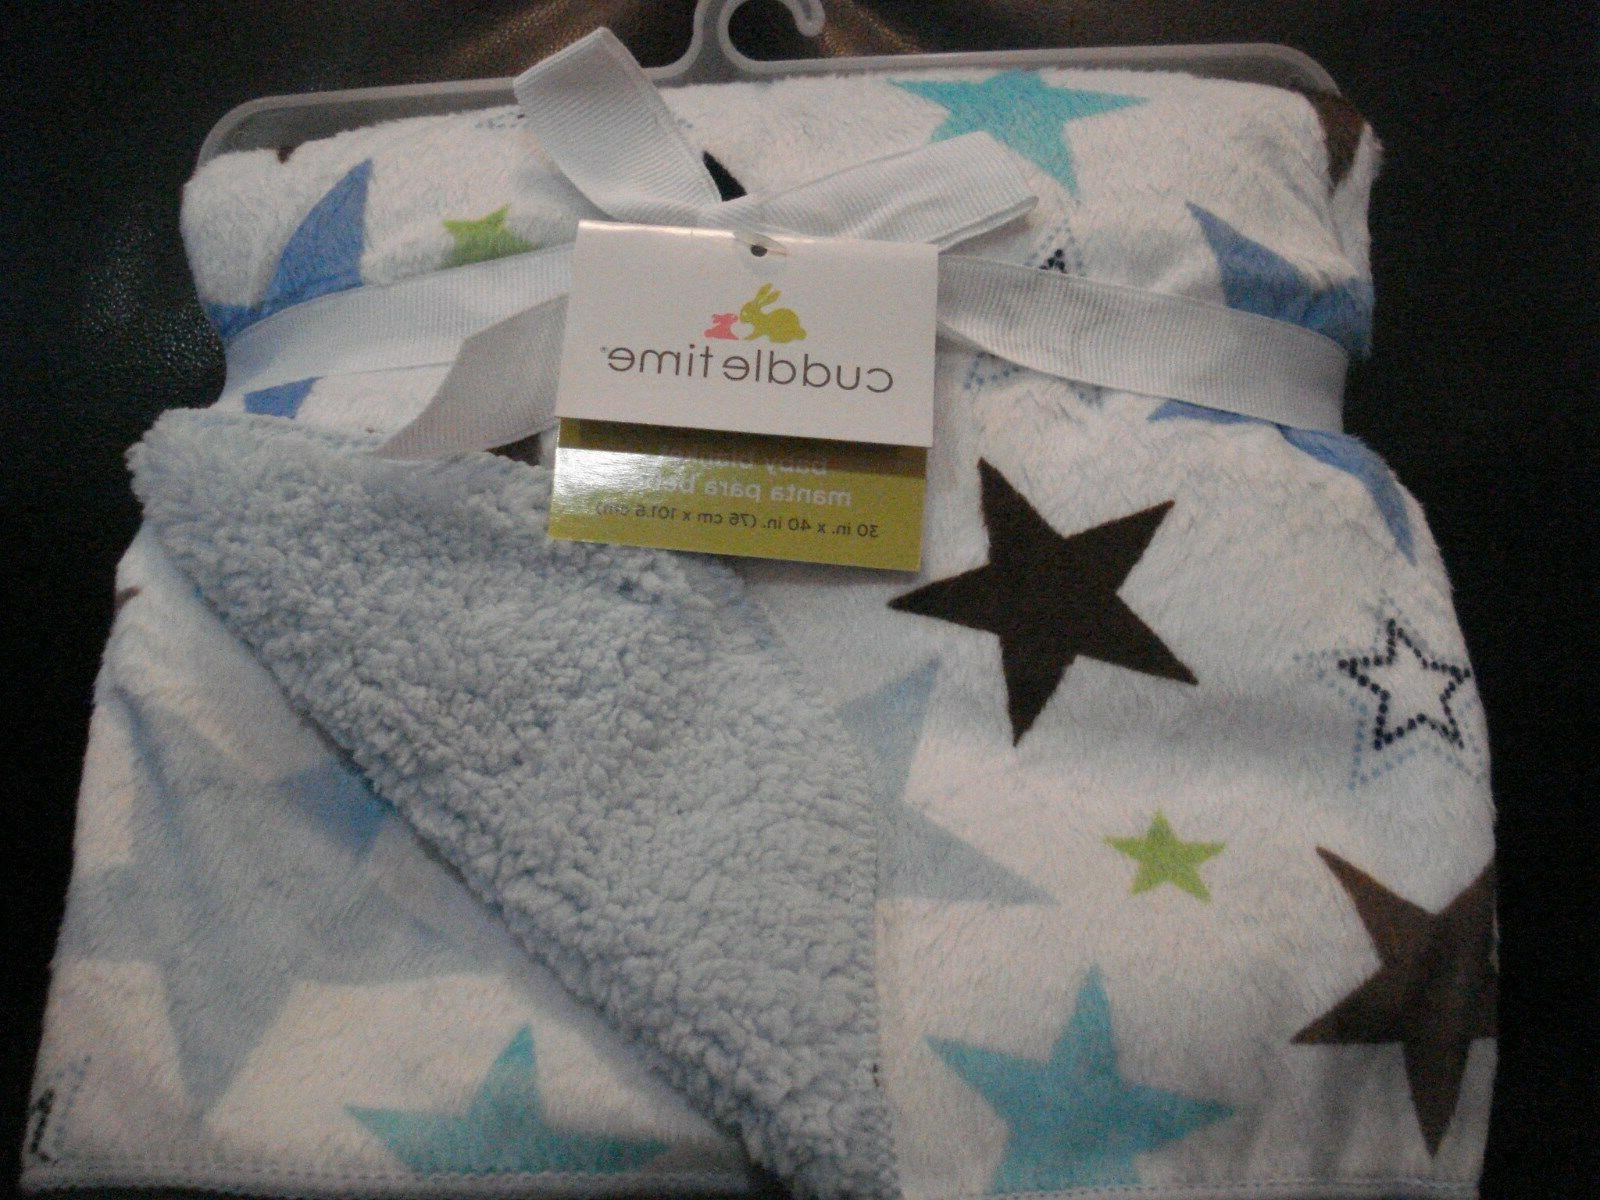 Cuddletime Valboa Fleece Blanket Stars Soft, Warm, Adorable Gift